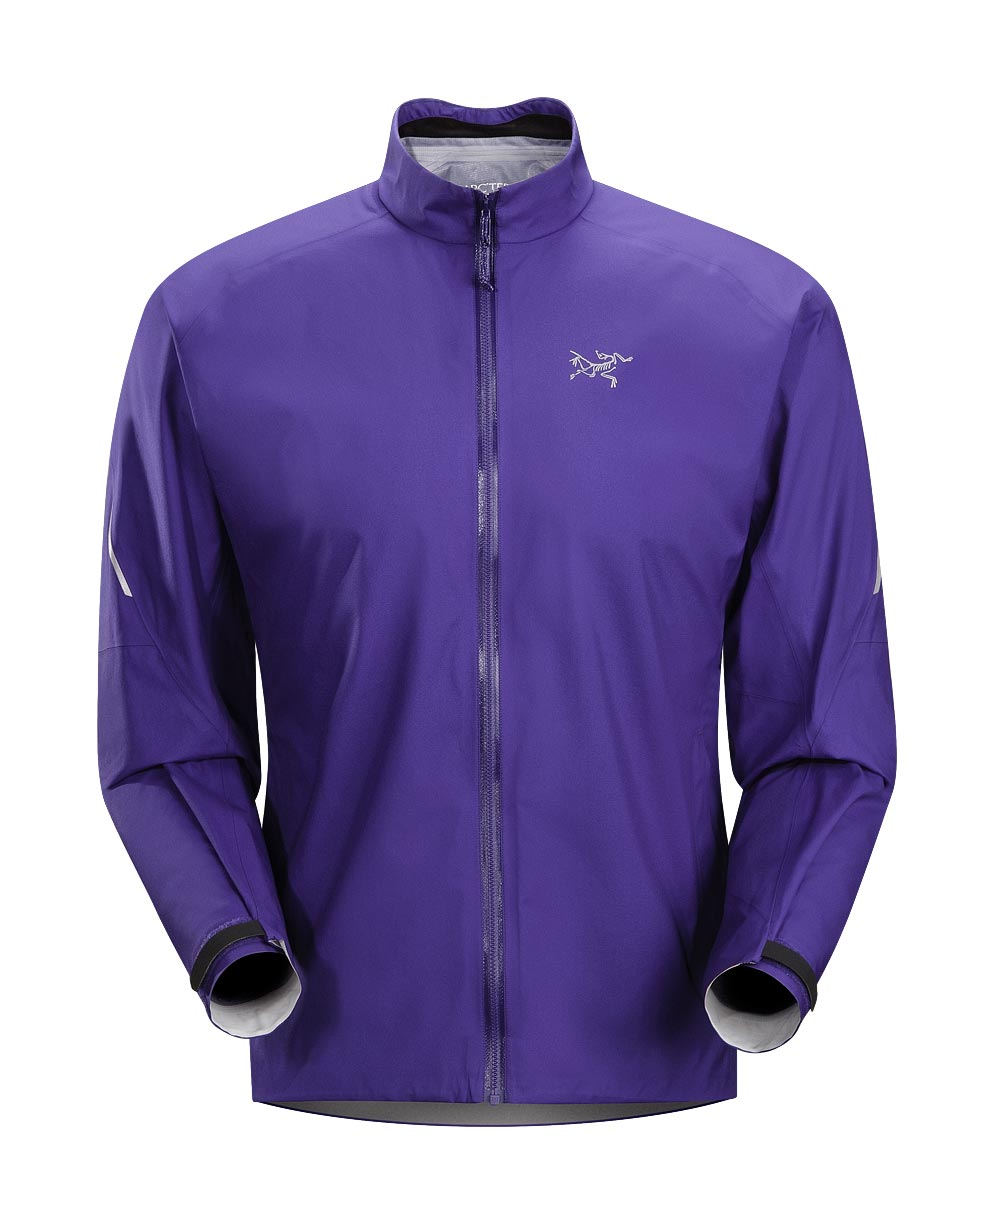 Arcteryx Jackets Men Squid Ink Visio FL Jacket - New